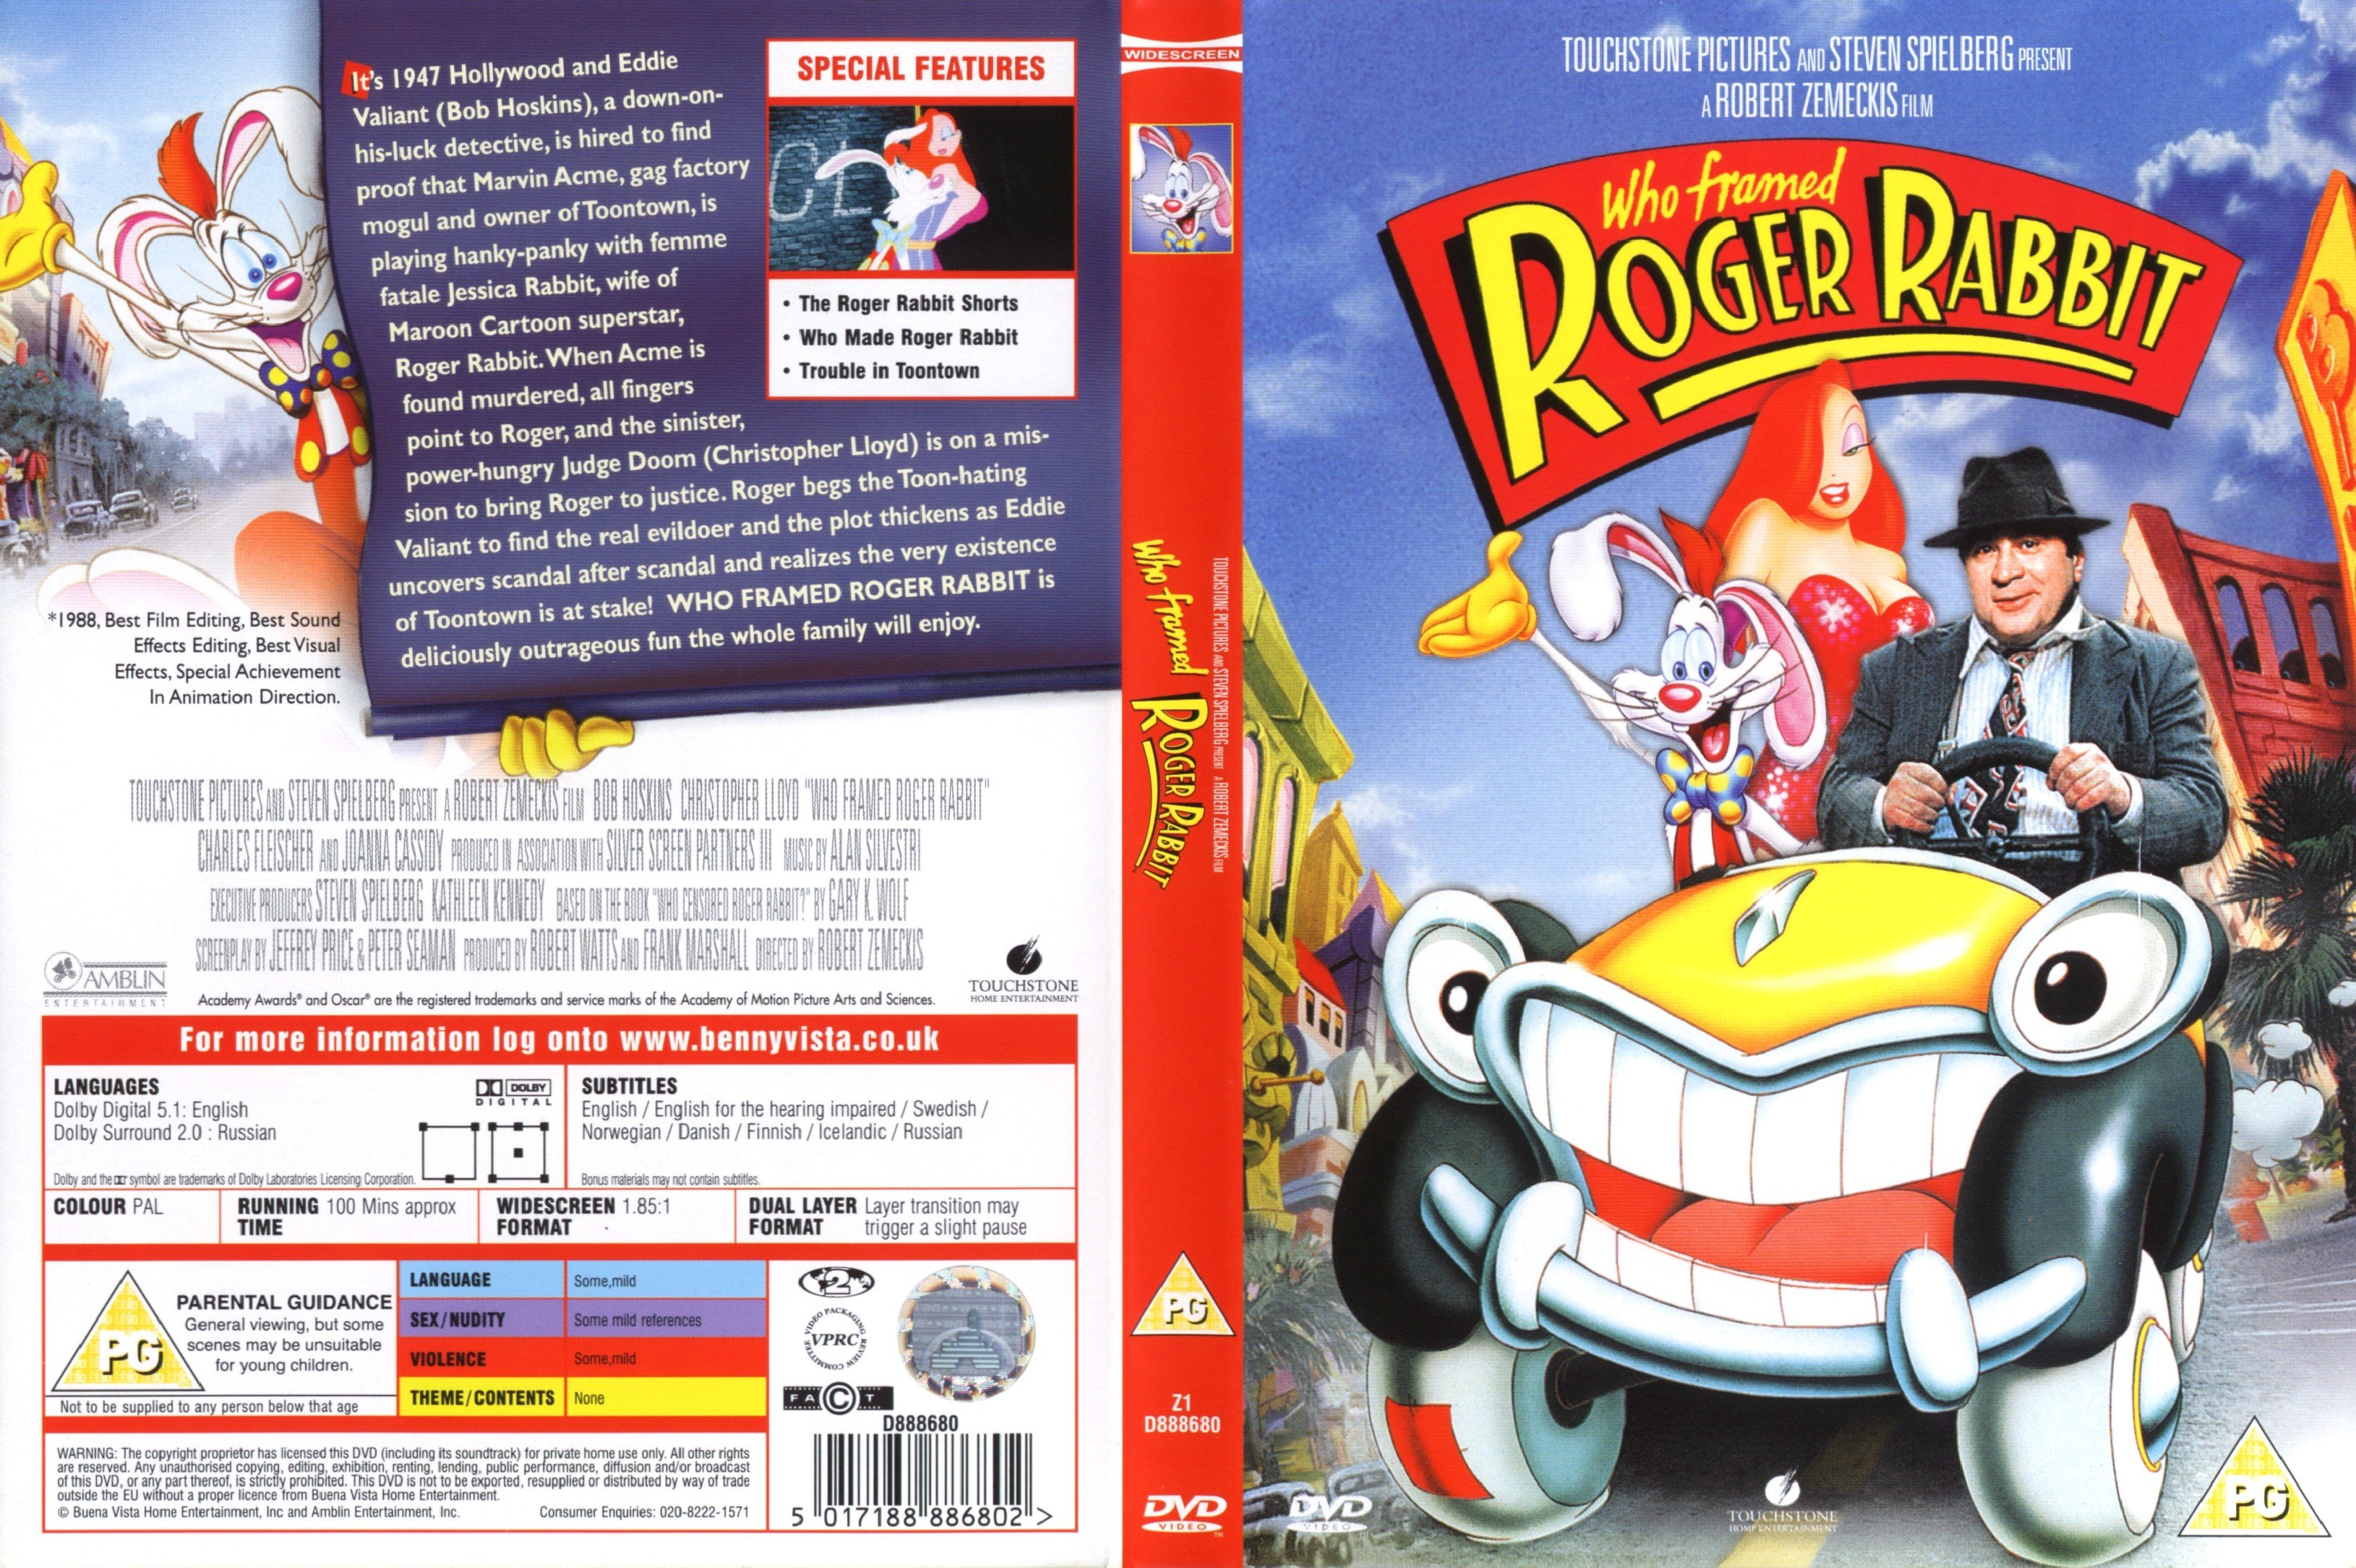 click here for - Who Framed Roger Rabbit Dvd